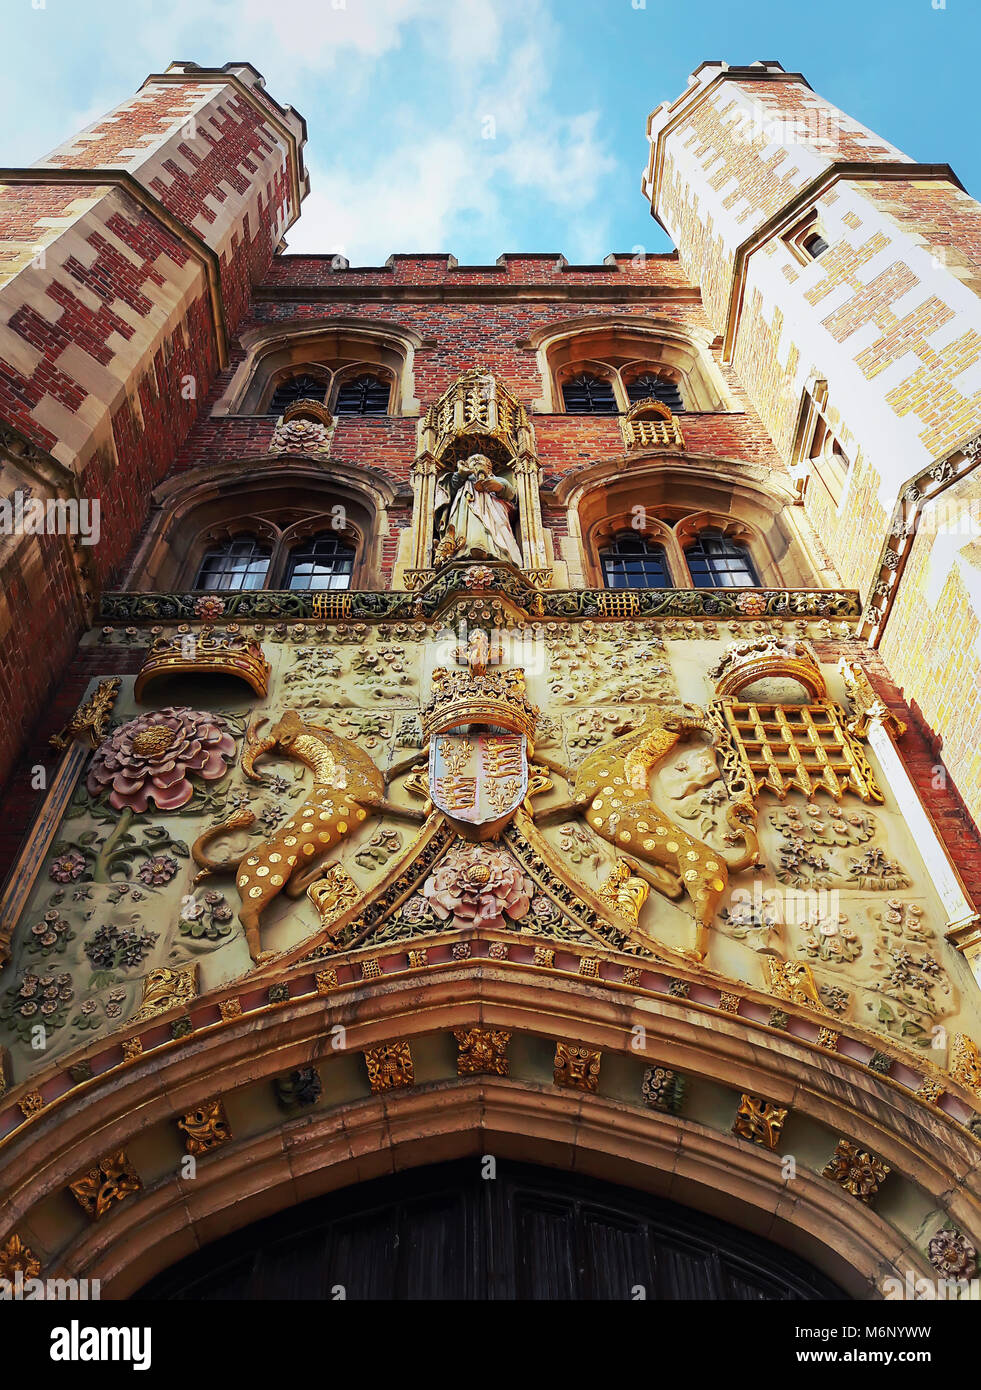 The decorated facade of the gatehouse at St Johns College in Cambridge, UK. Stock Photo